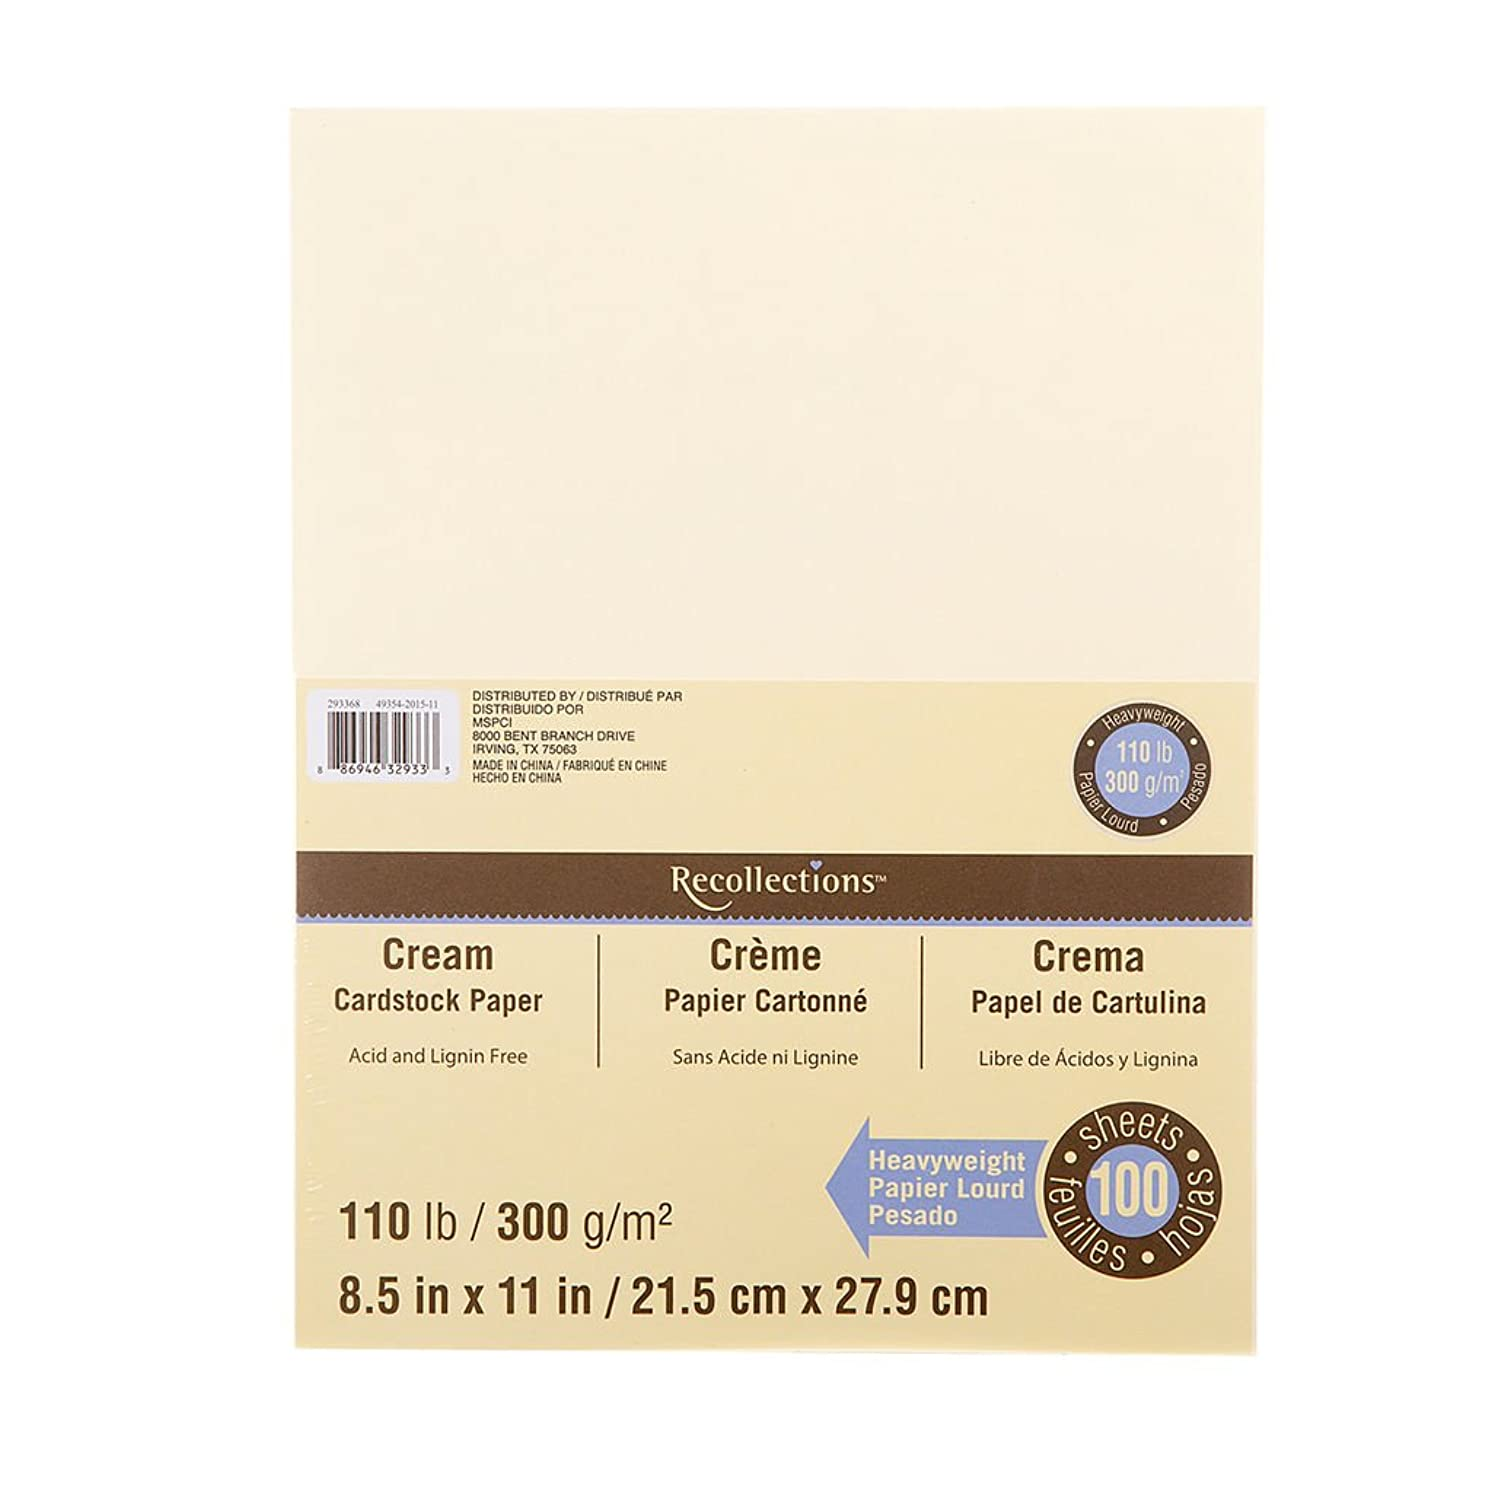 Recollections Cream Heavyweight Cardstock Paper, 8.5